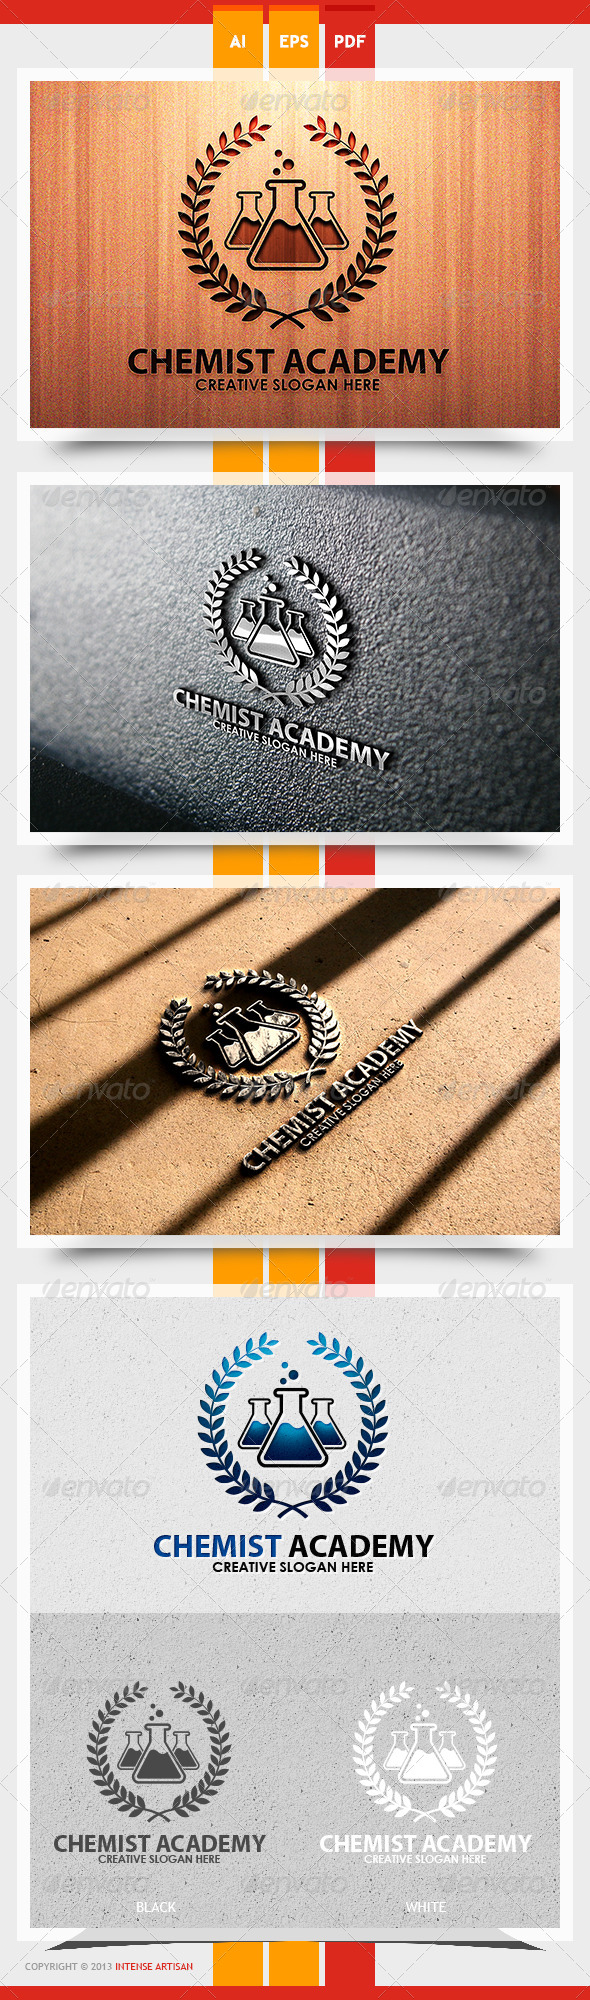 Chemist Academy Logo Template - Objects Logo Templates